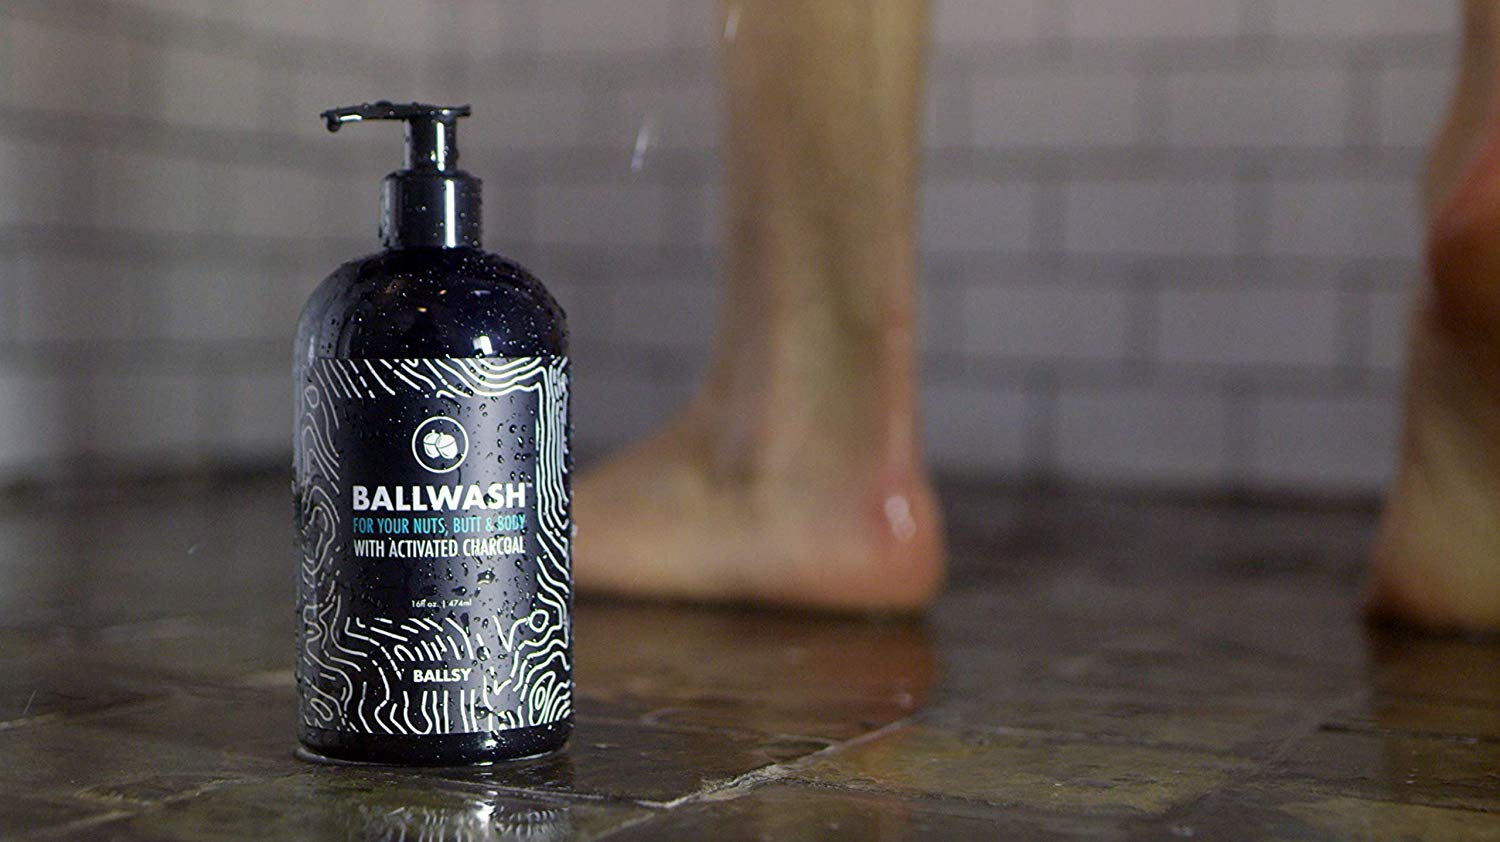 Best Intimate Washes For Men Wipes Soap And Spray For Balls Penis Spy